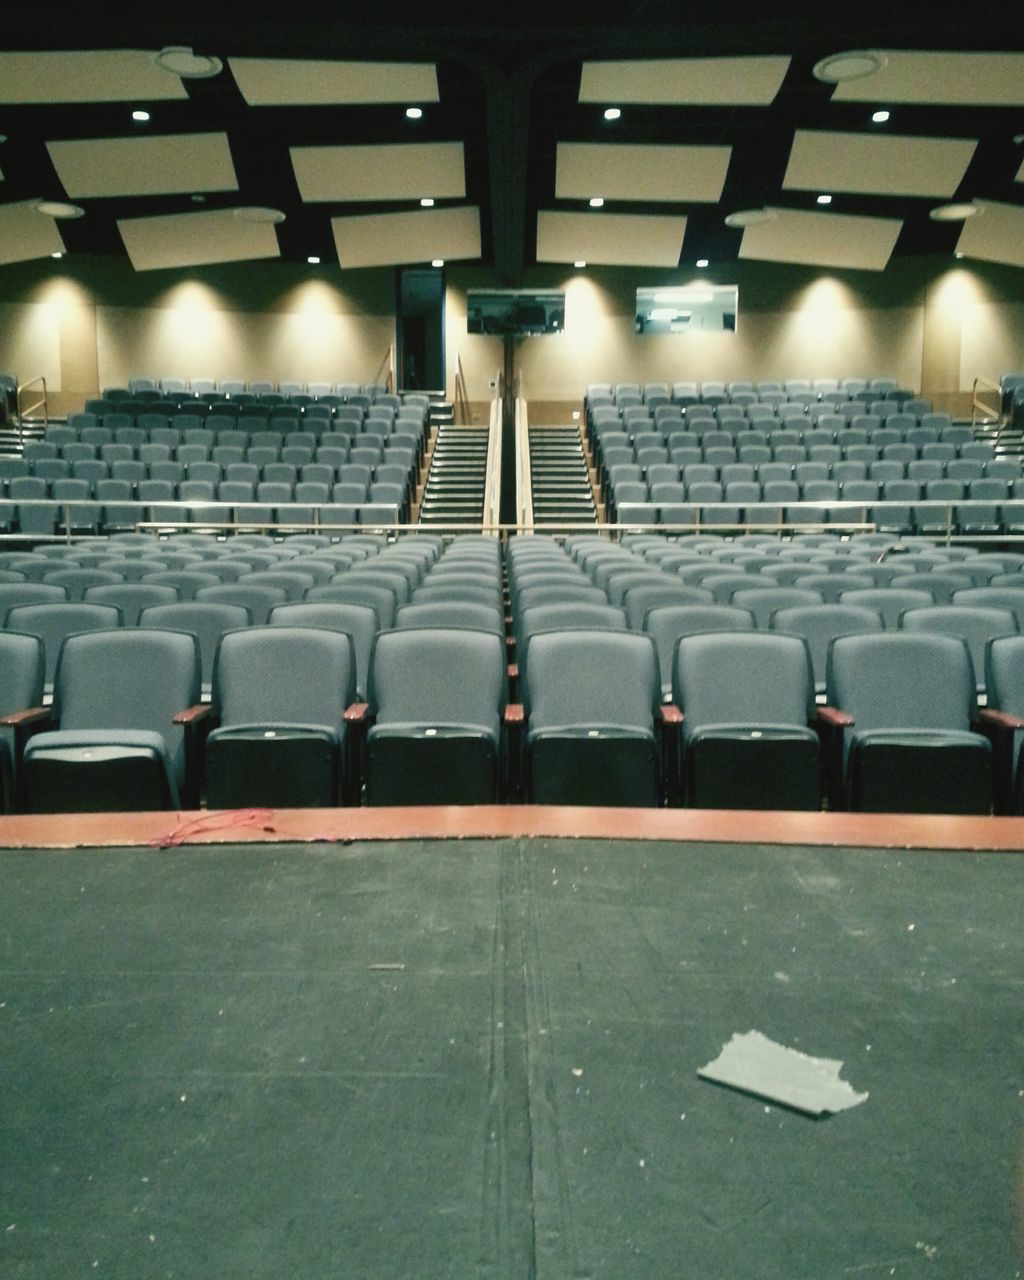 in a row, seat, chair, empty, auditorium, indoors, absence, arts culture and entertainment, audience, illuminated, lecture hall, film industry, day, people